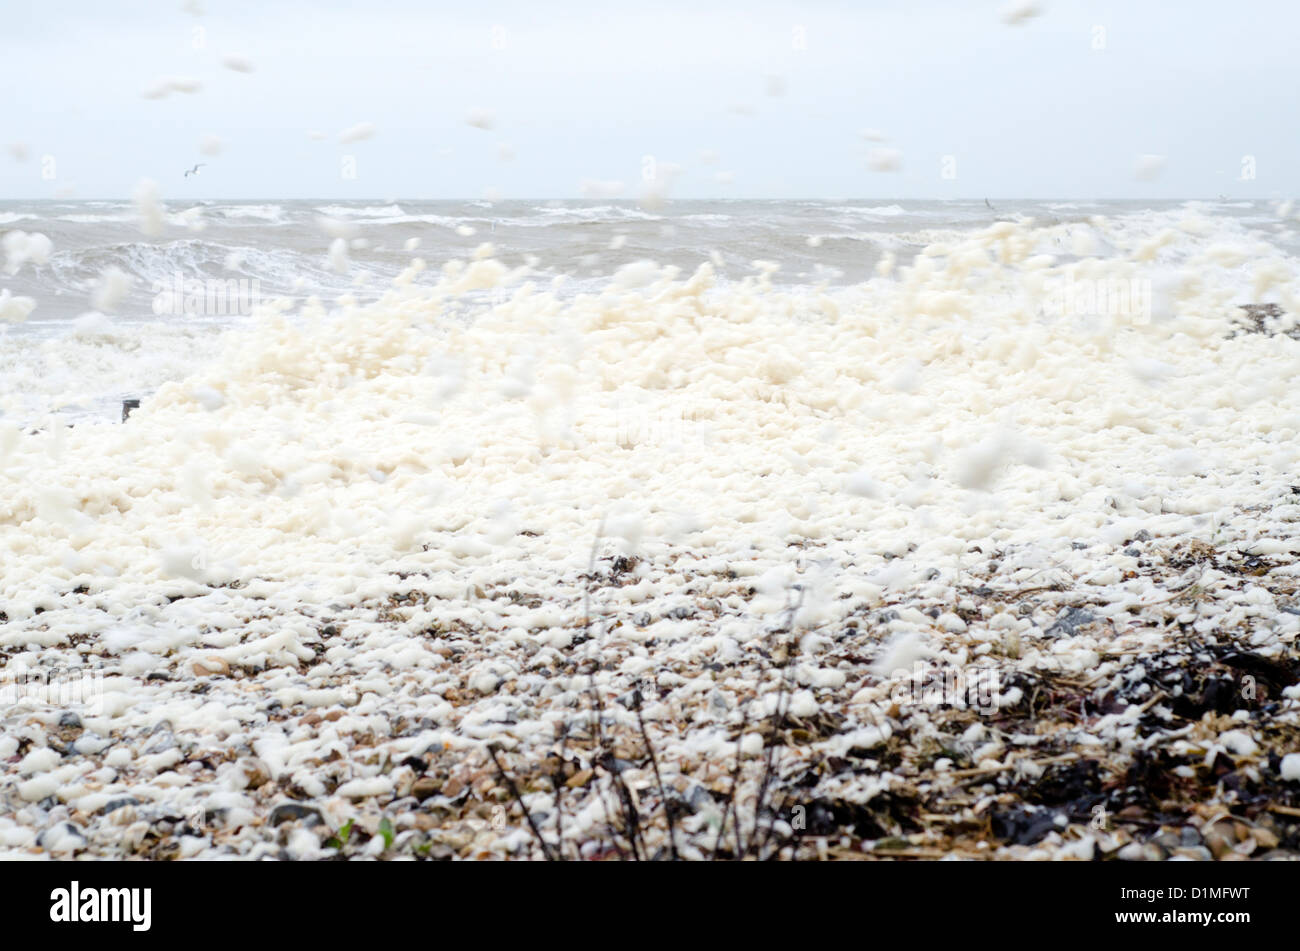 Spume (foam, froth) flying around the beach after stormy weather. - Stock Image